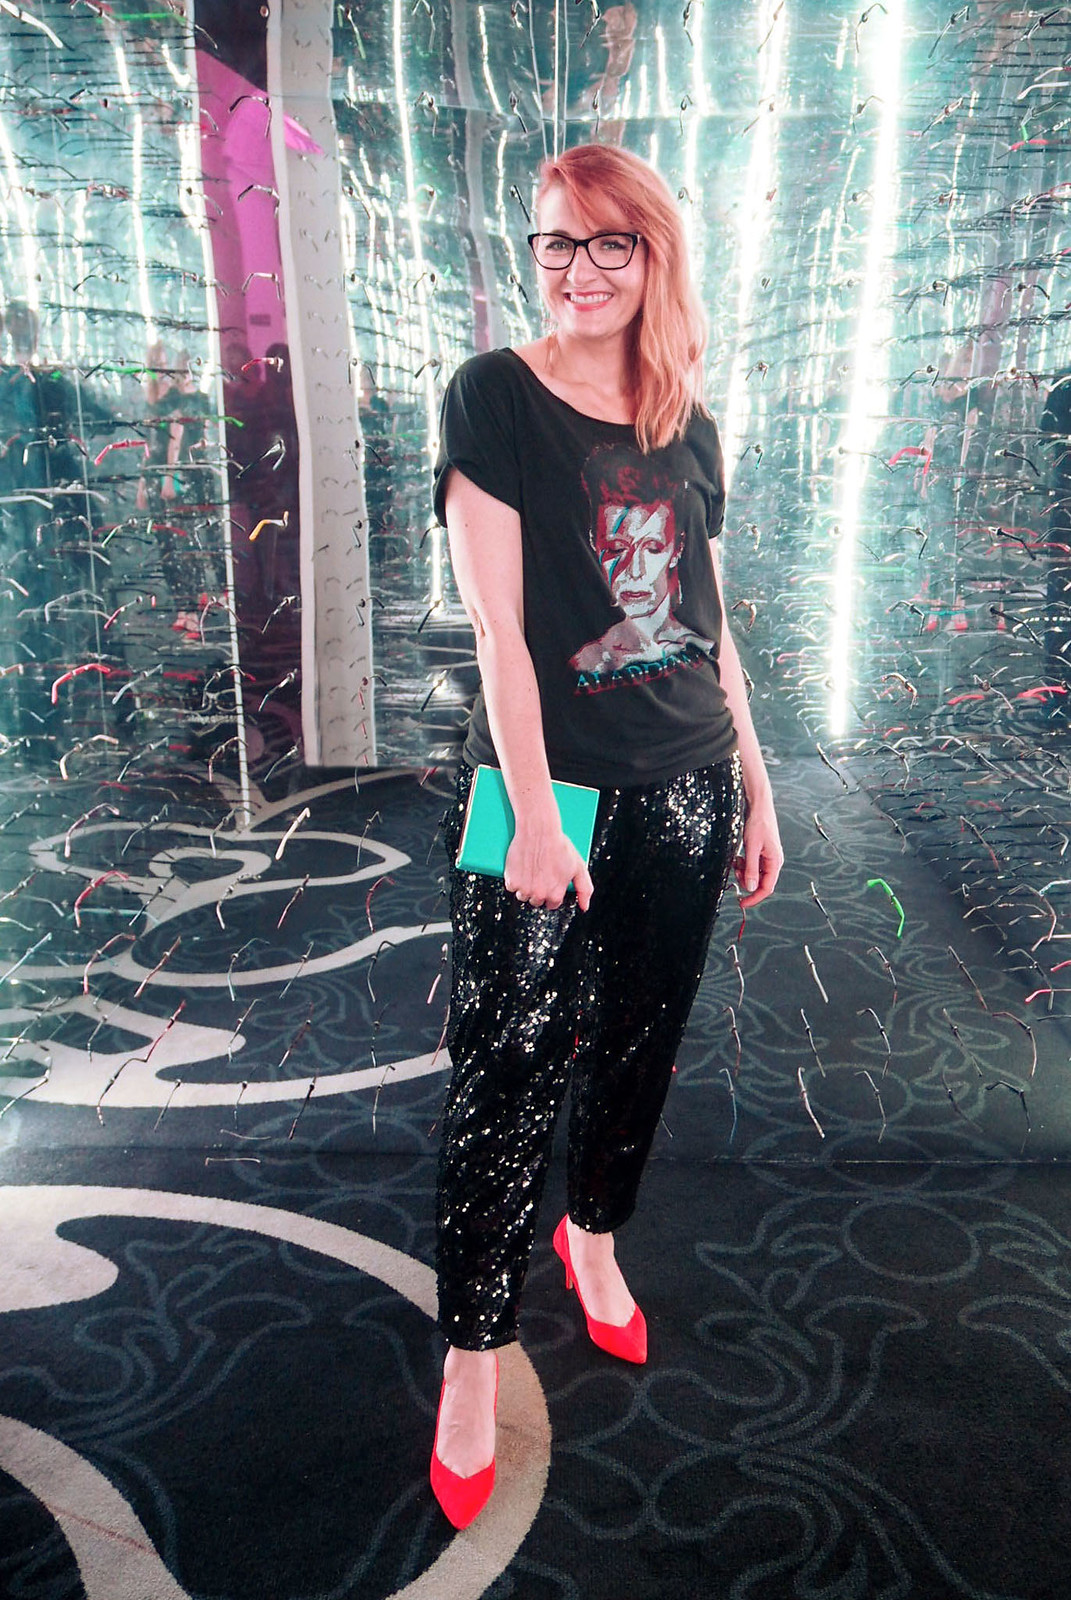 Specsavers SWOTY 2017: Evening/cocktail date night outfit - David Bowie rock t-shirt tee \ black sequin trousers \ bright orange pointed heels | Not Dressed As Lamb, over 40 style